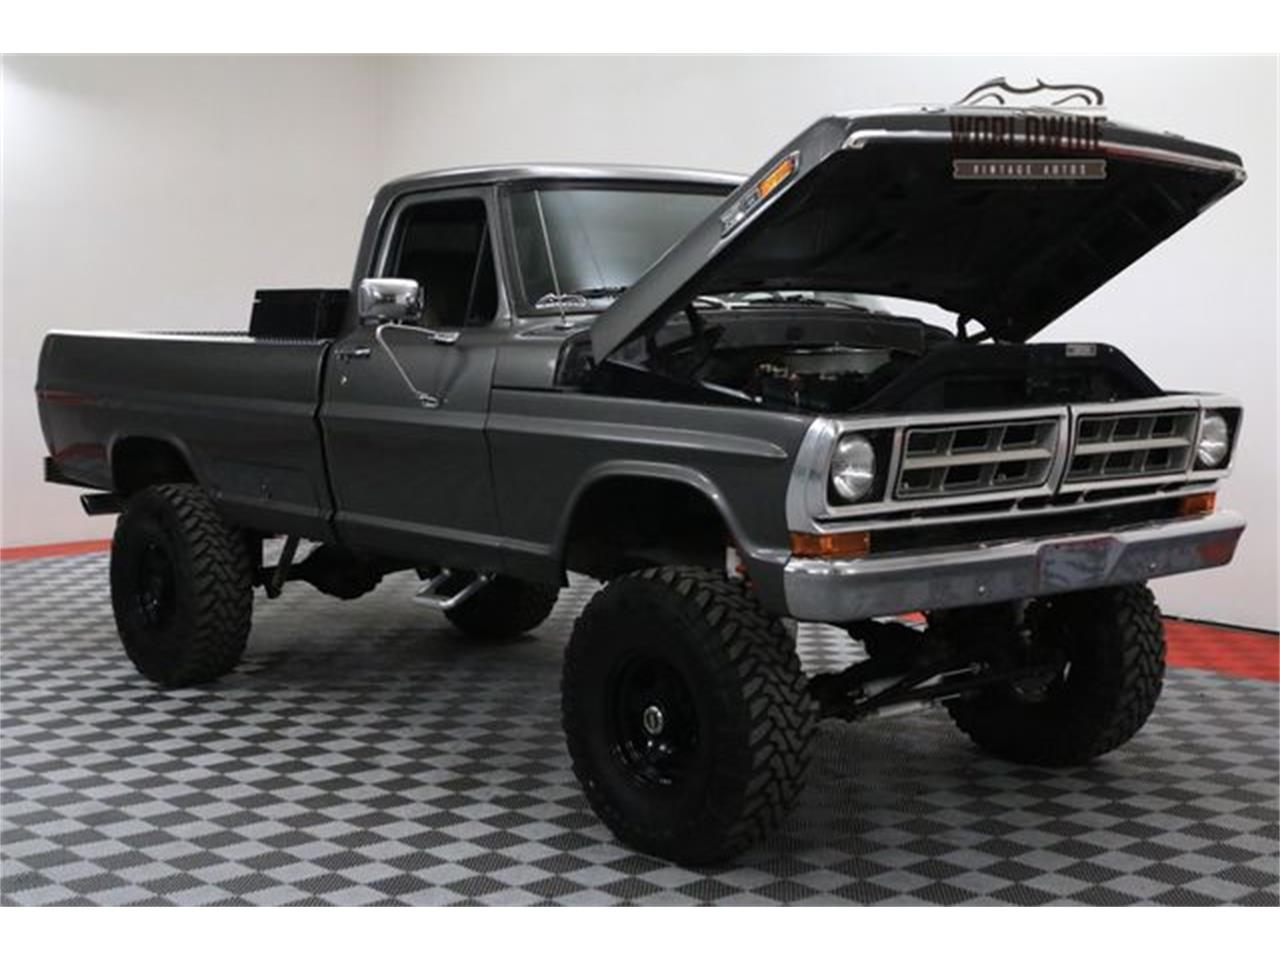 1971 Ford F-100 390 V8  Dark Gray  7.jpg